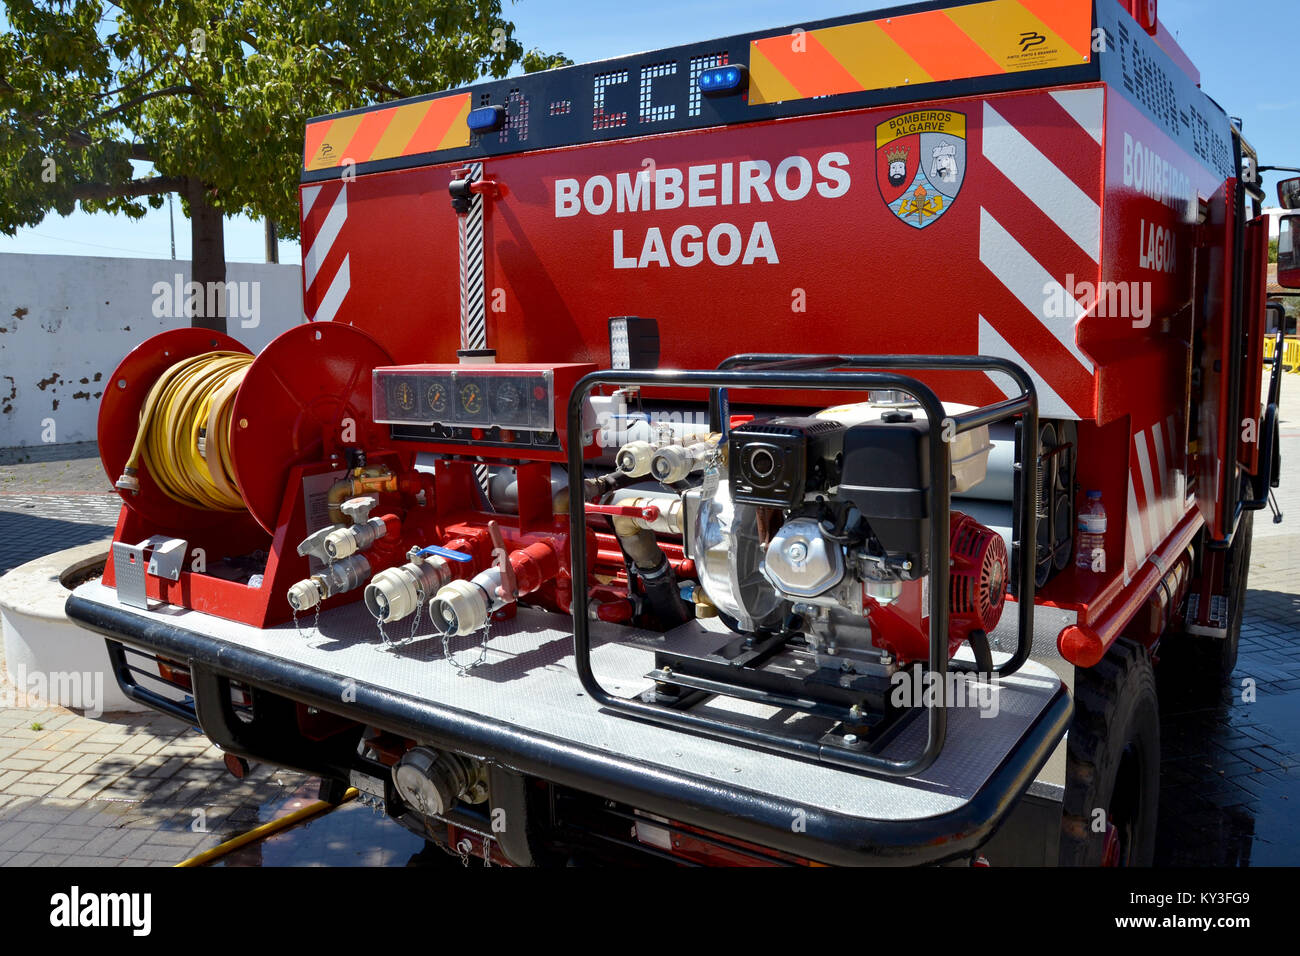 Portugal, Algarve, Lagoa, Circa 04.06.2017. Back of a Brand new Fire engine being displayed in a local international - Stock Image